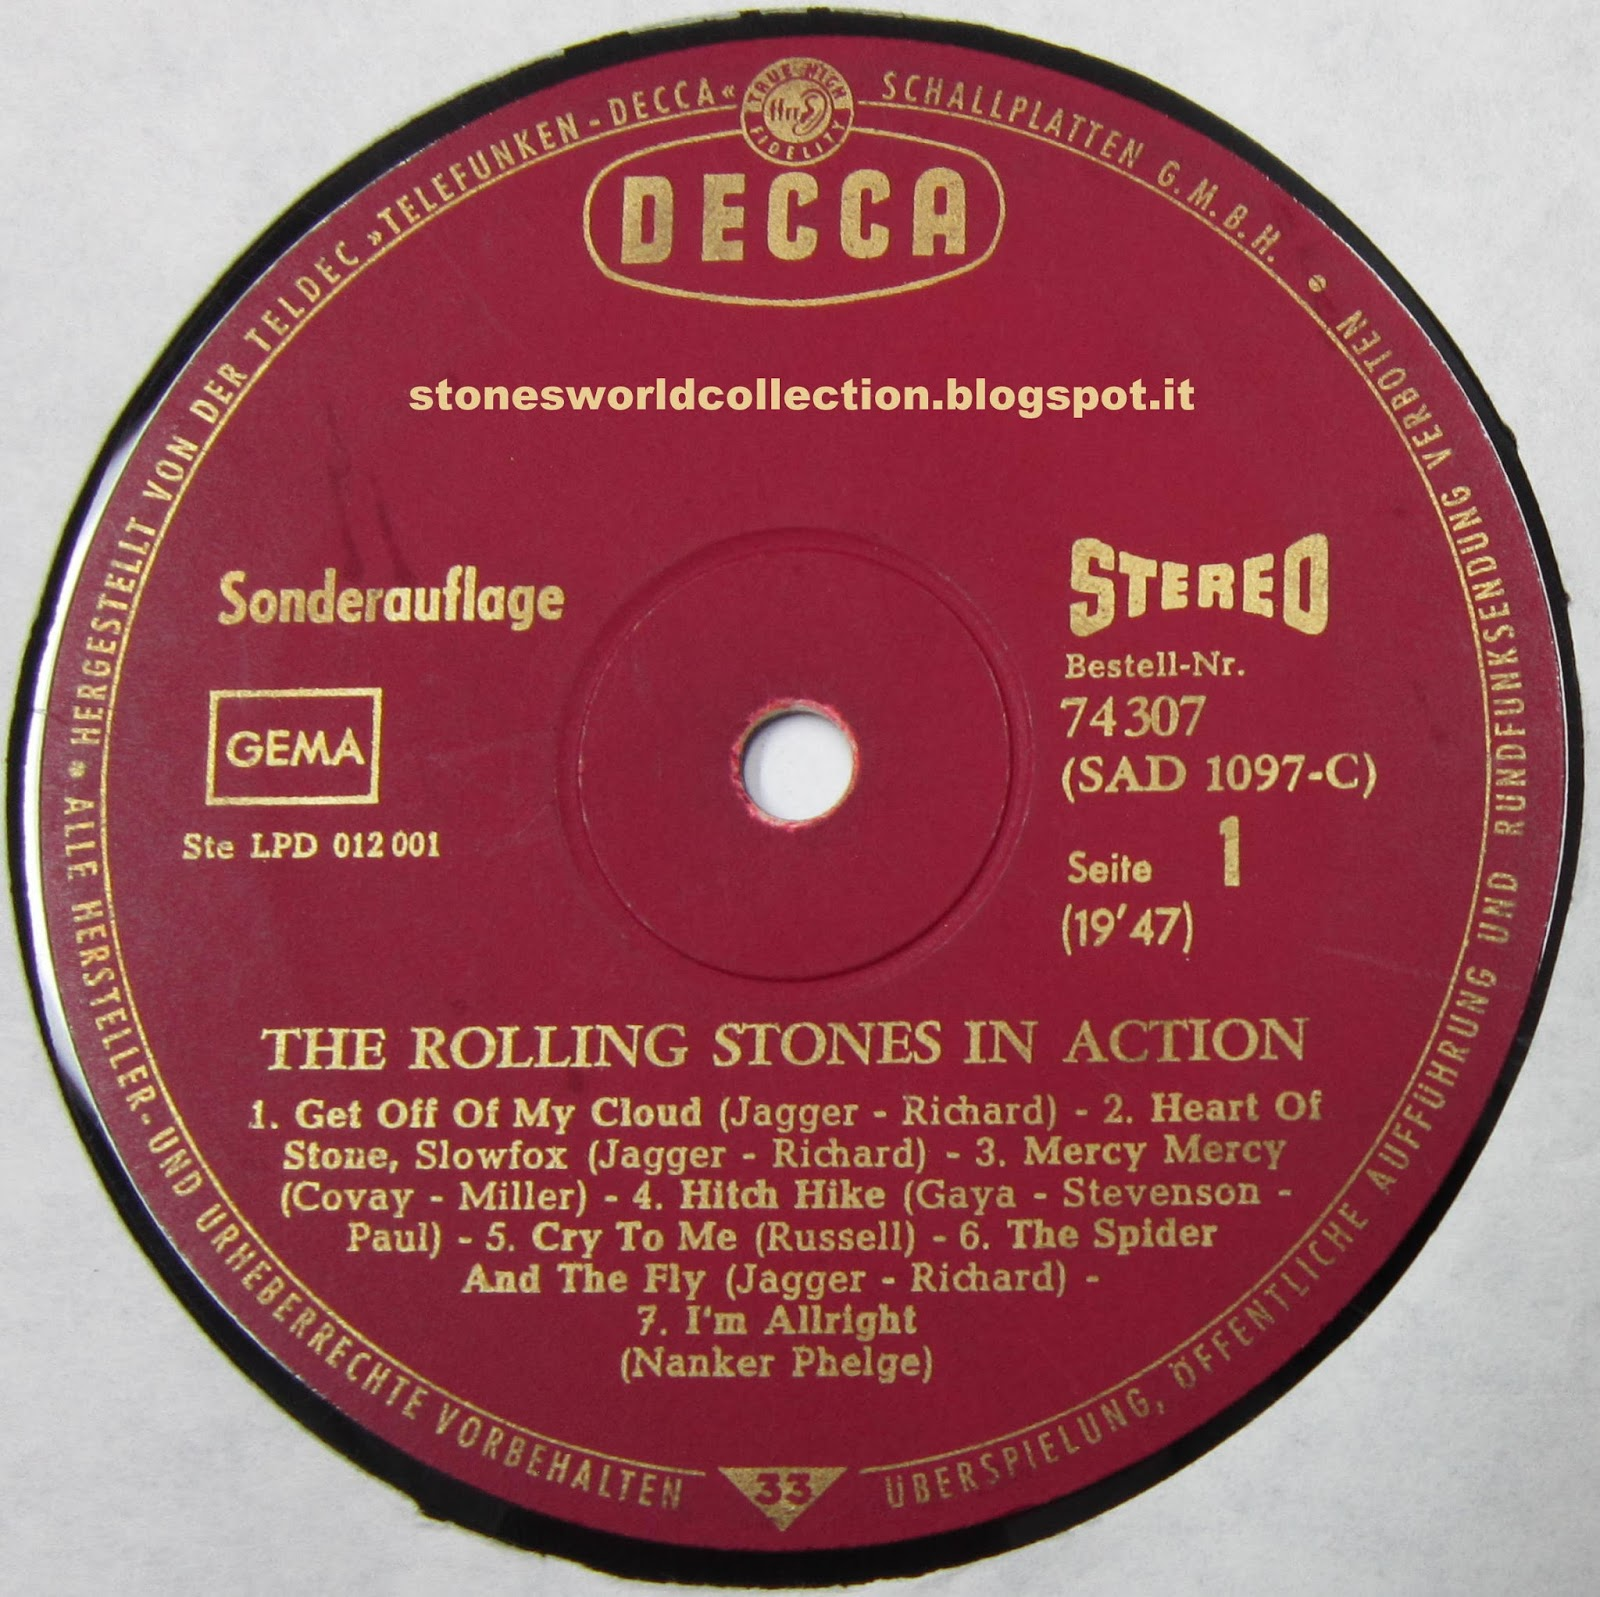 Stonesworldcollection The Rolling Stones In Action